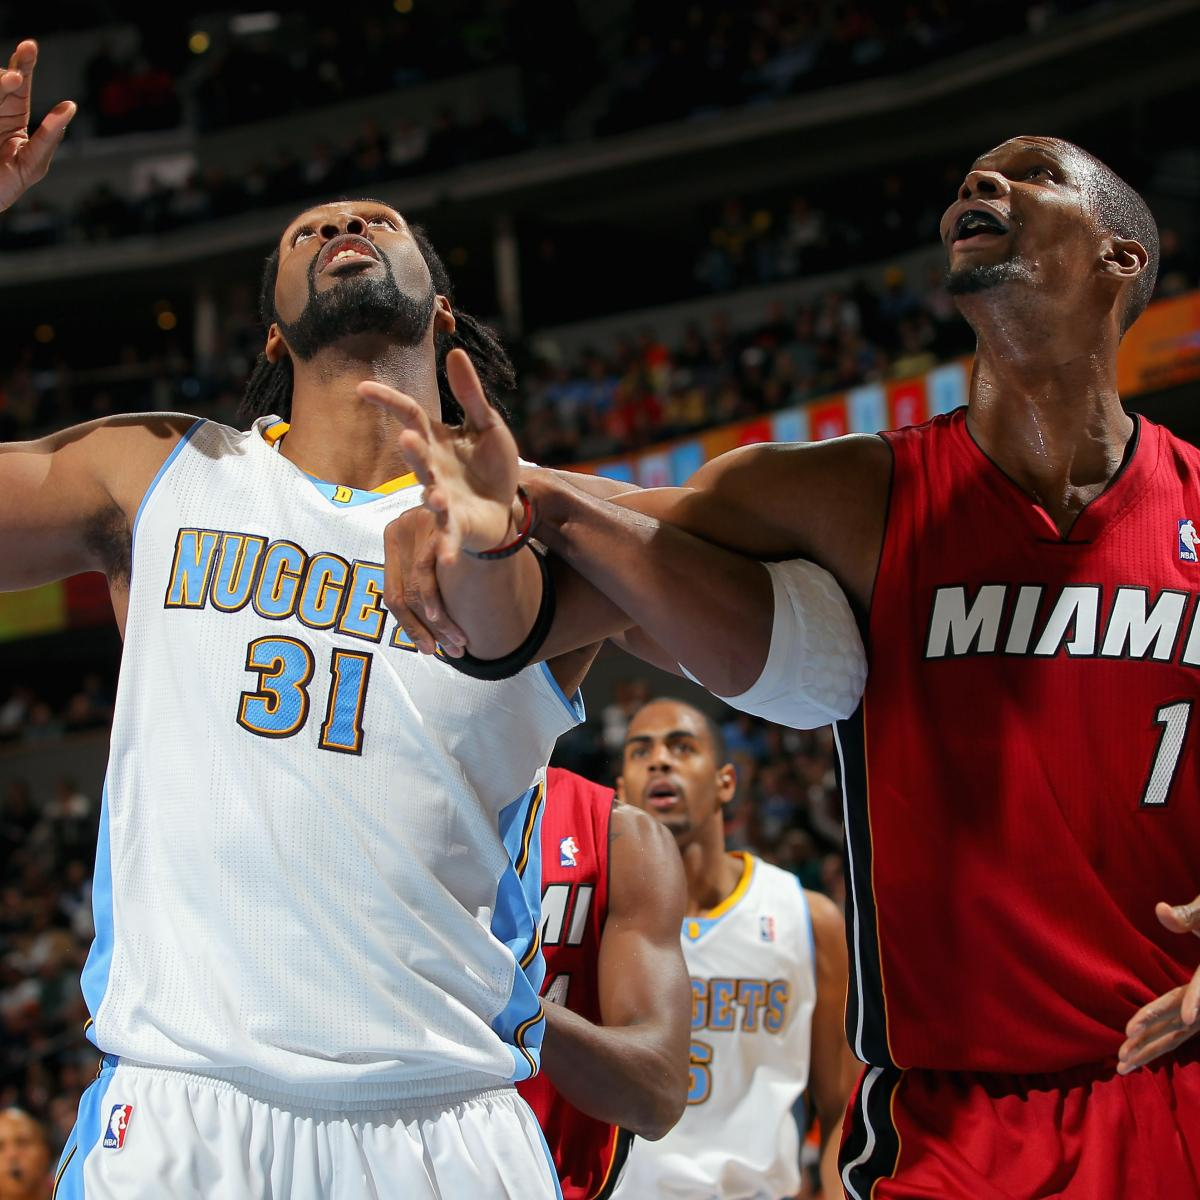 Denver Nuggets Vs. Miami Heat: Preview, Analysis And